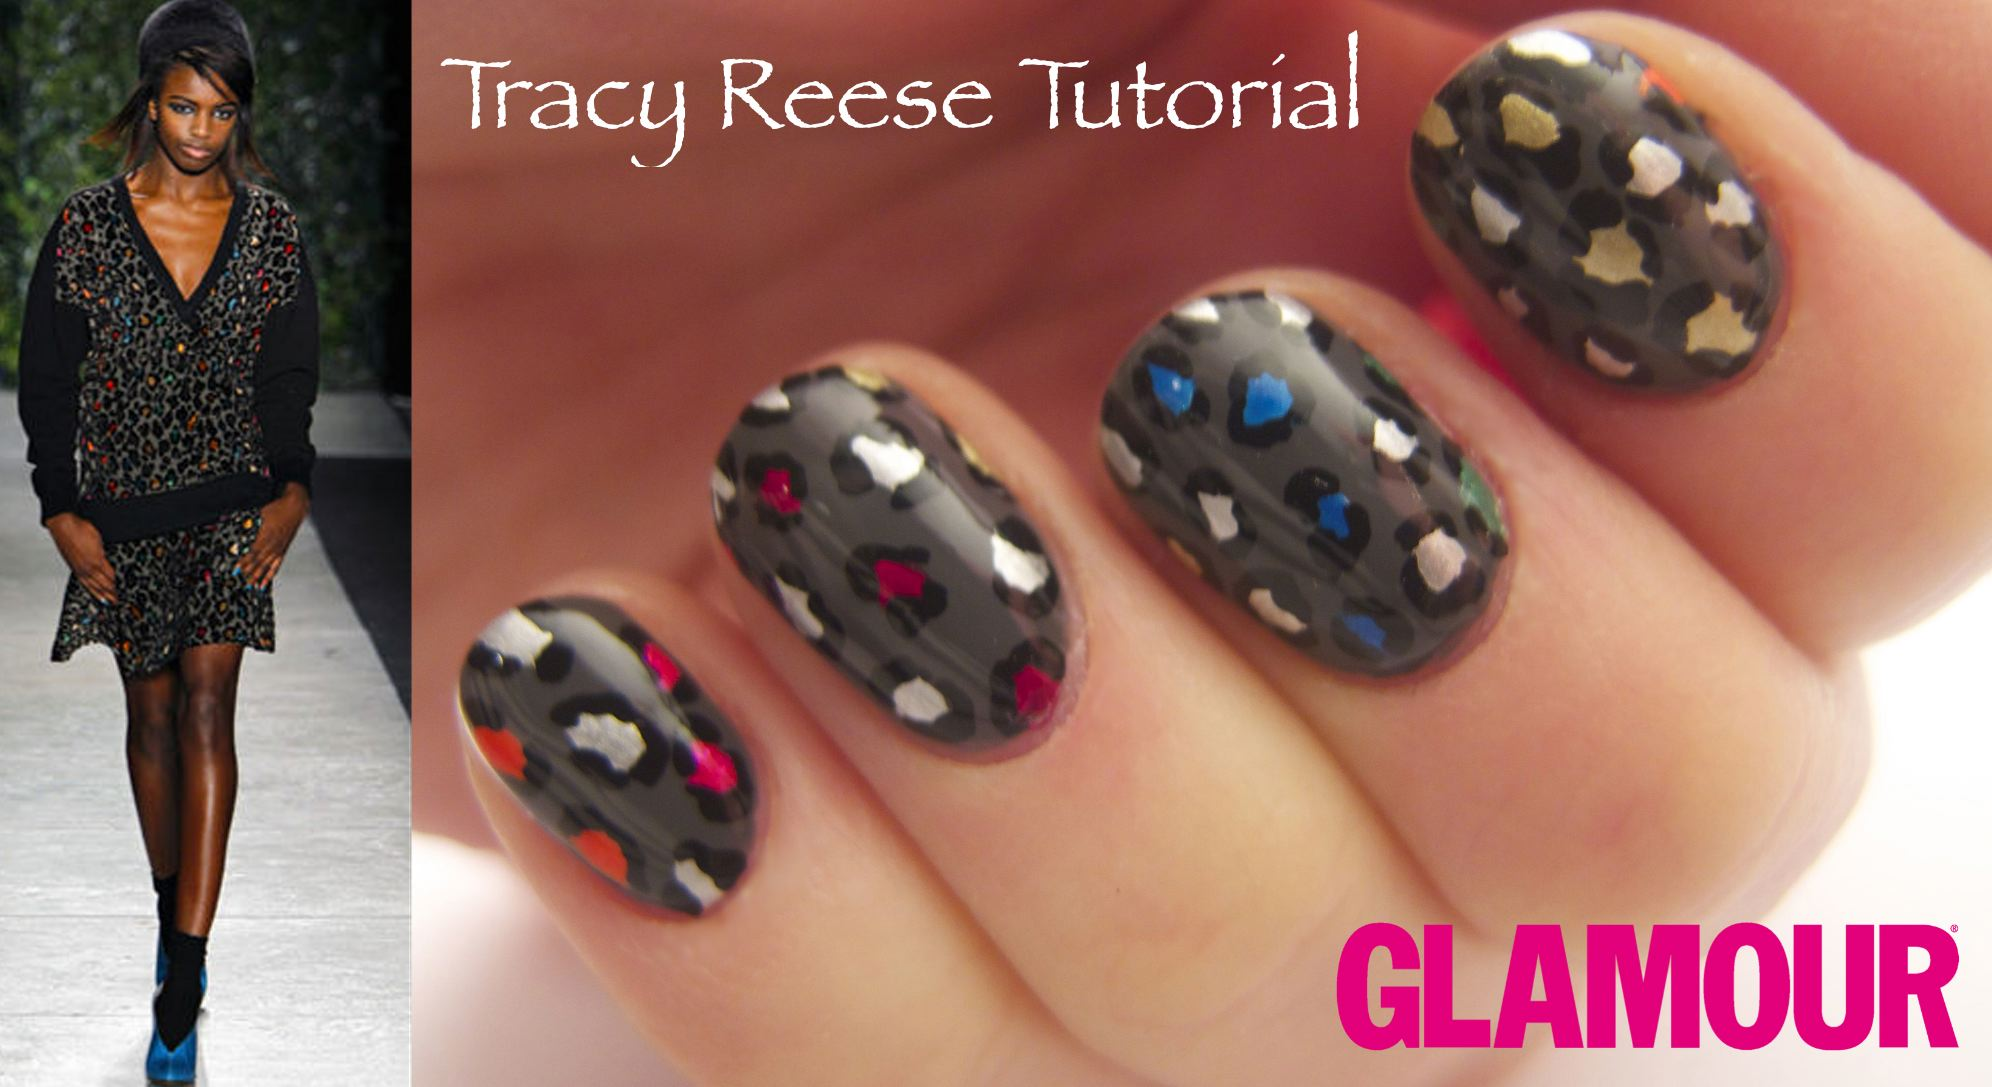 Tracy Reese Tutorial